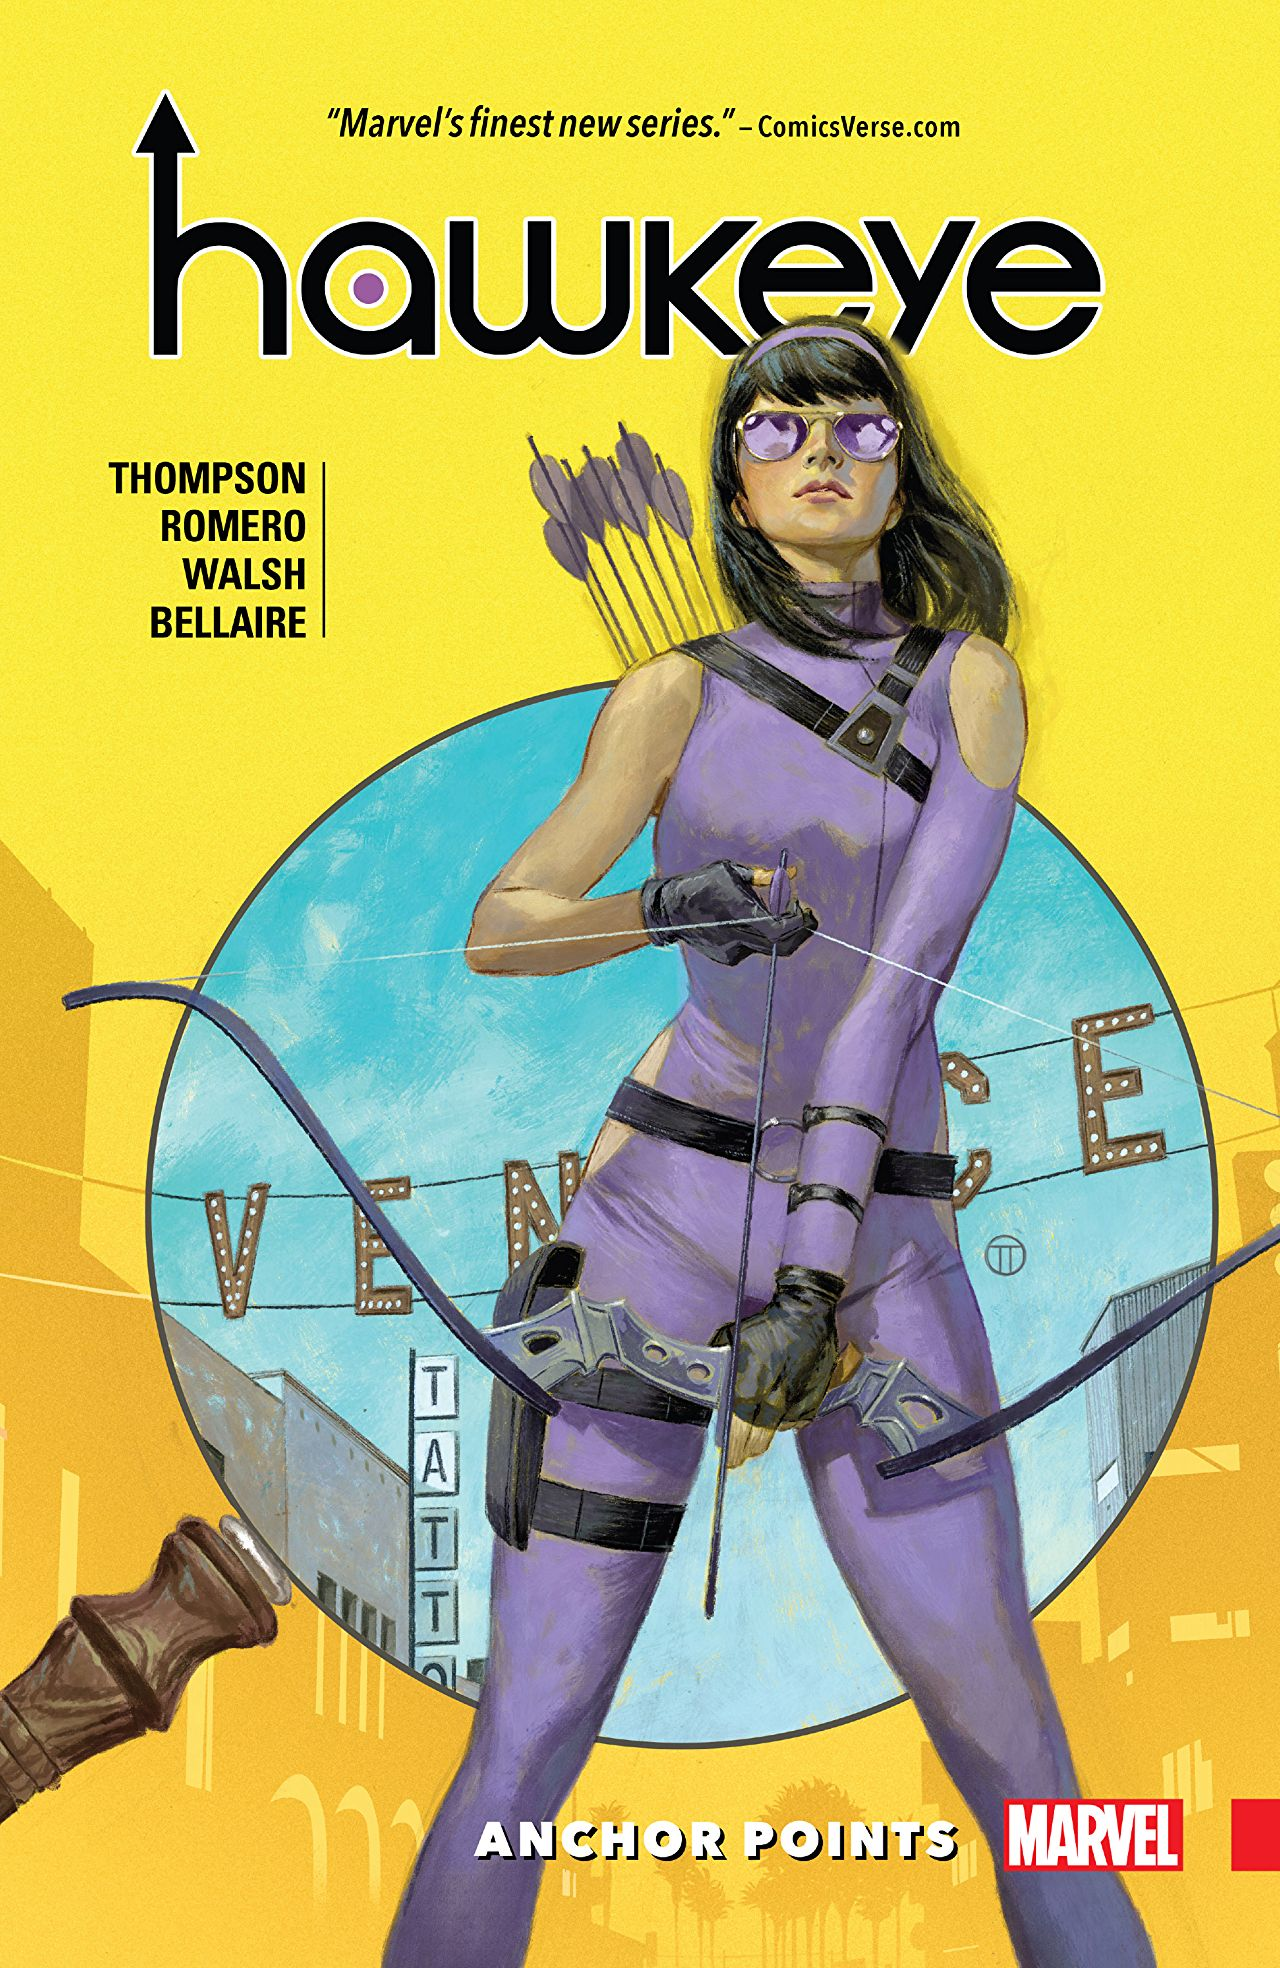 Hawkeye Anchor Points Cover - Matt Reads Comics